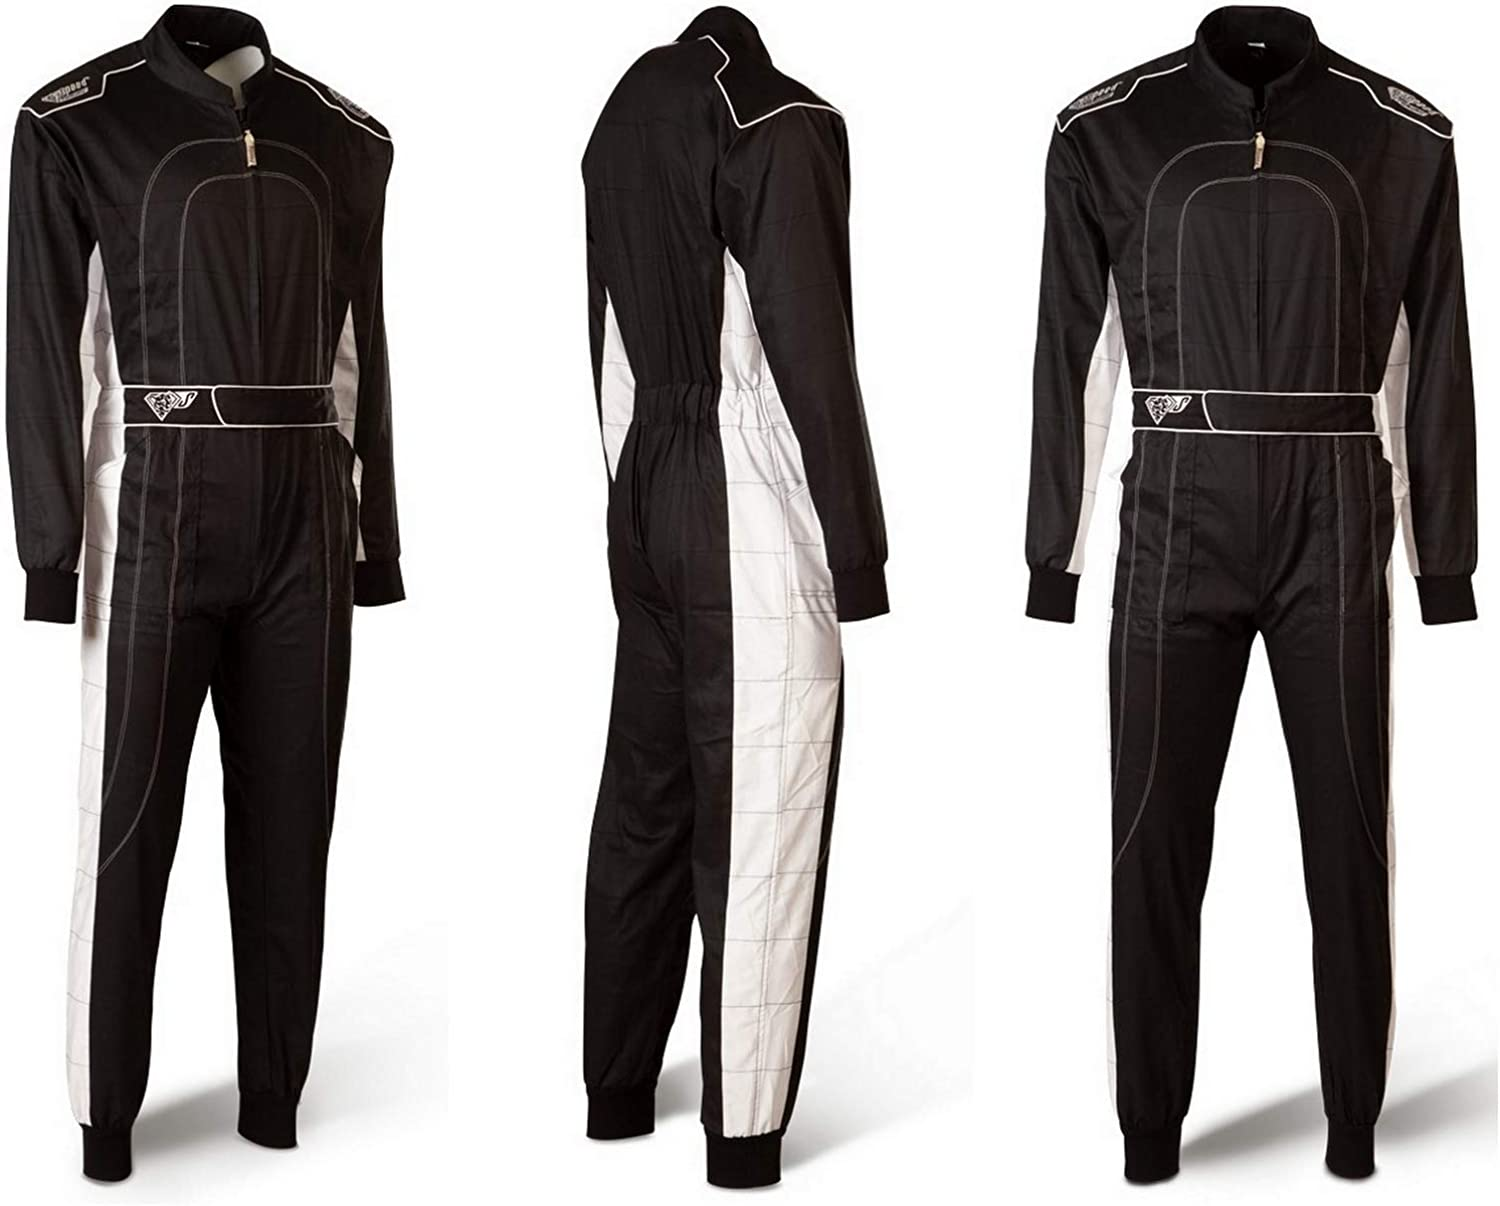 Speed Denver Hs 2 2018 Racewear Karting Overall Black White Bekleidung